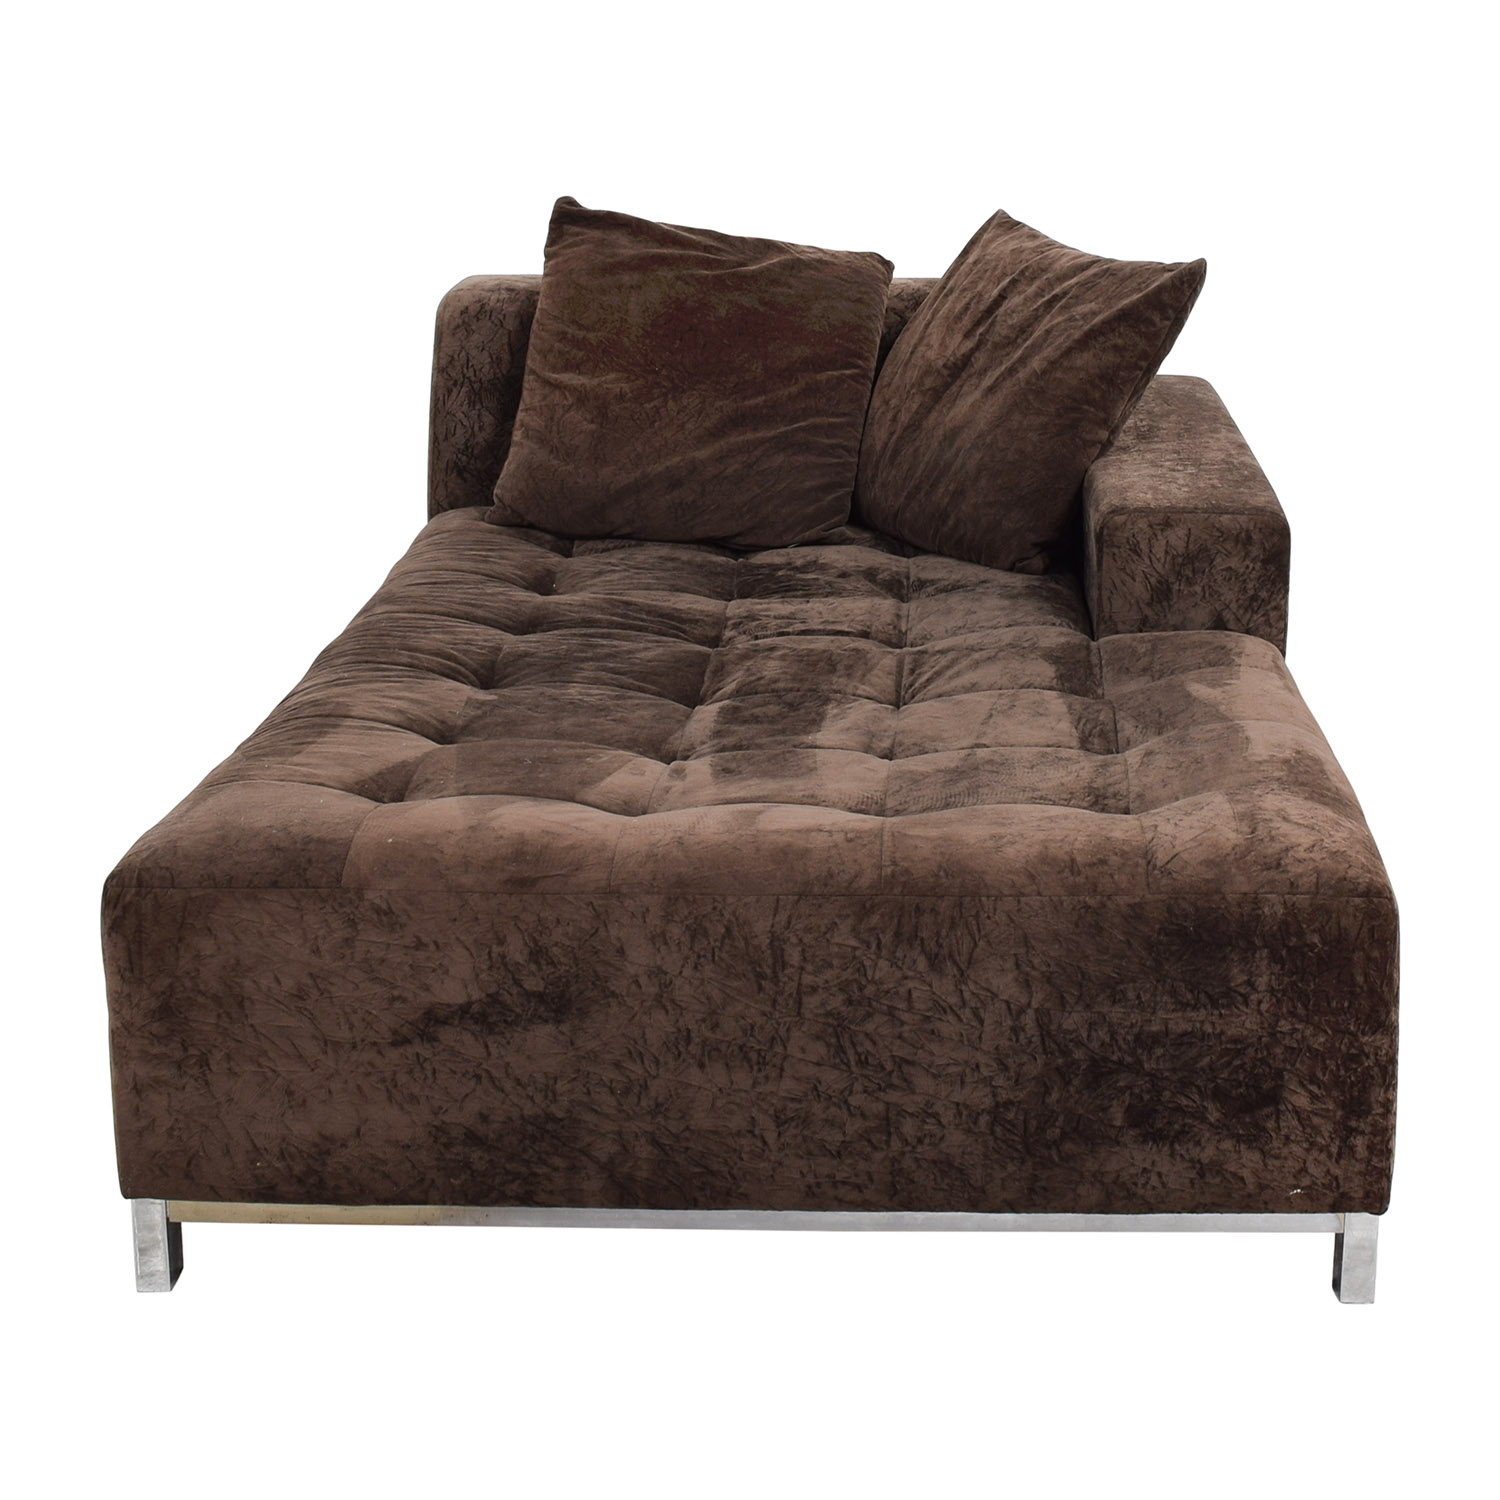 Safaviah Safaviah Brown Tufted Chaise Lounge for sale